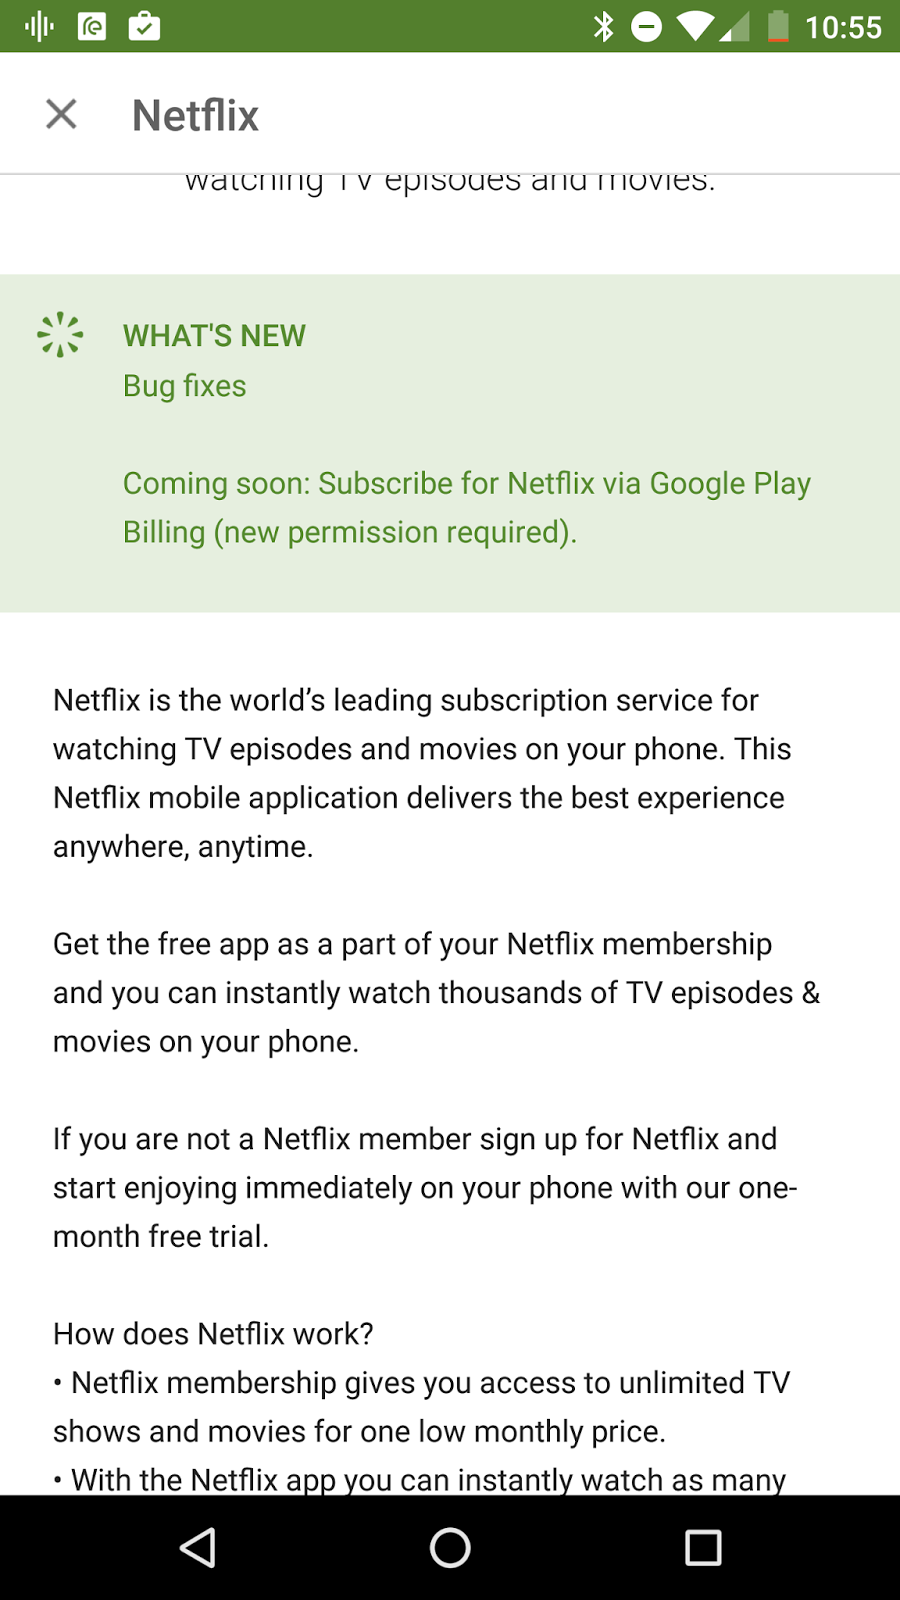 So Does That Mean You Can Use Your Google Play Rewards Money To Get Netflix For Free Let S Hope